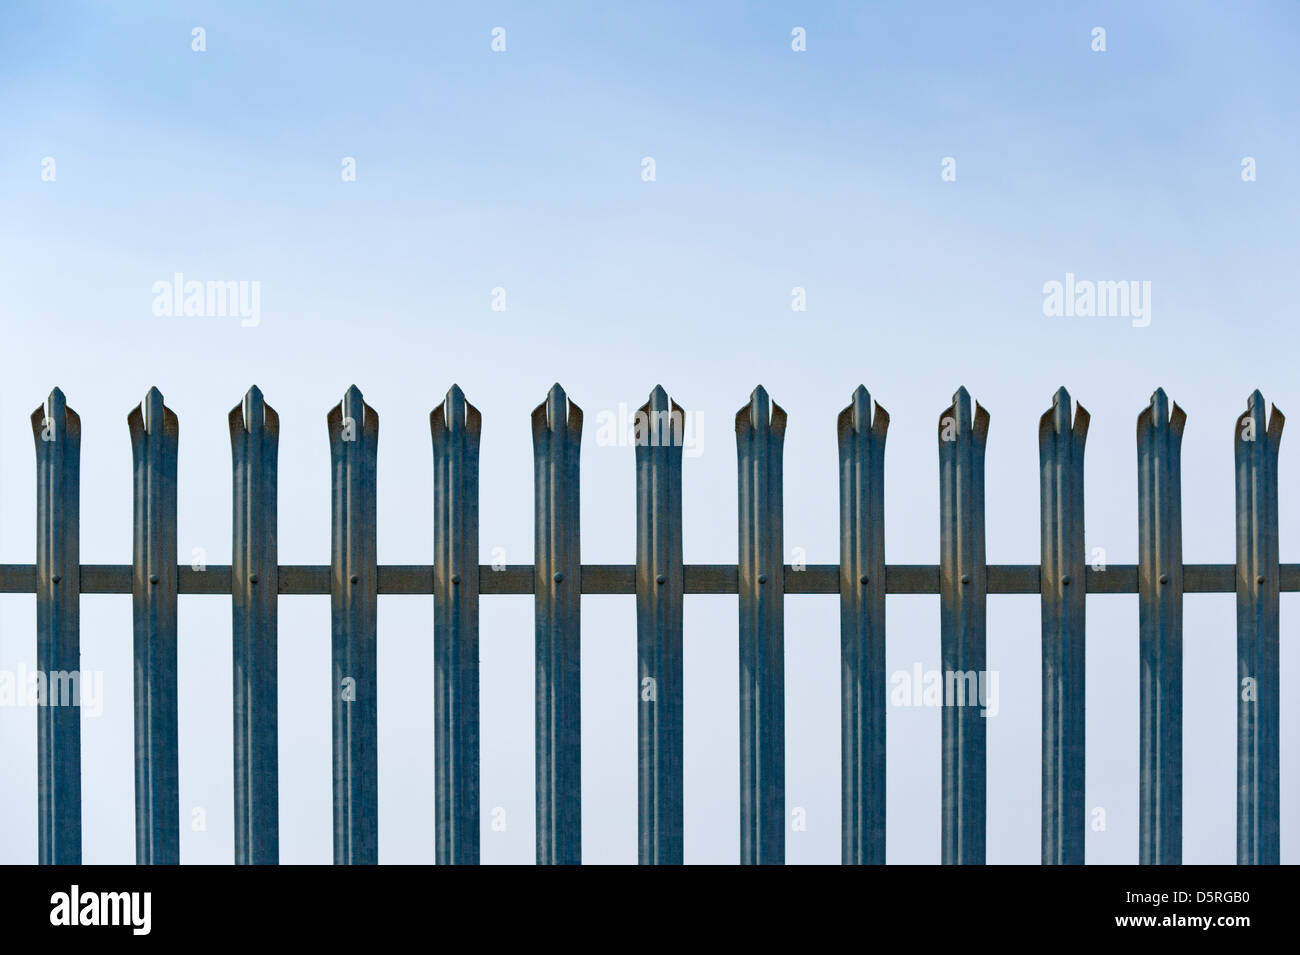 Spiked Security Fence Against a blue sky. Concept - Stock Image